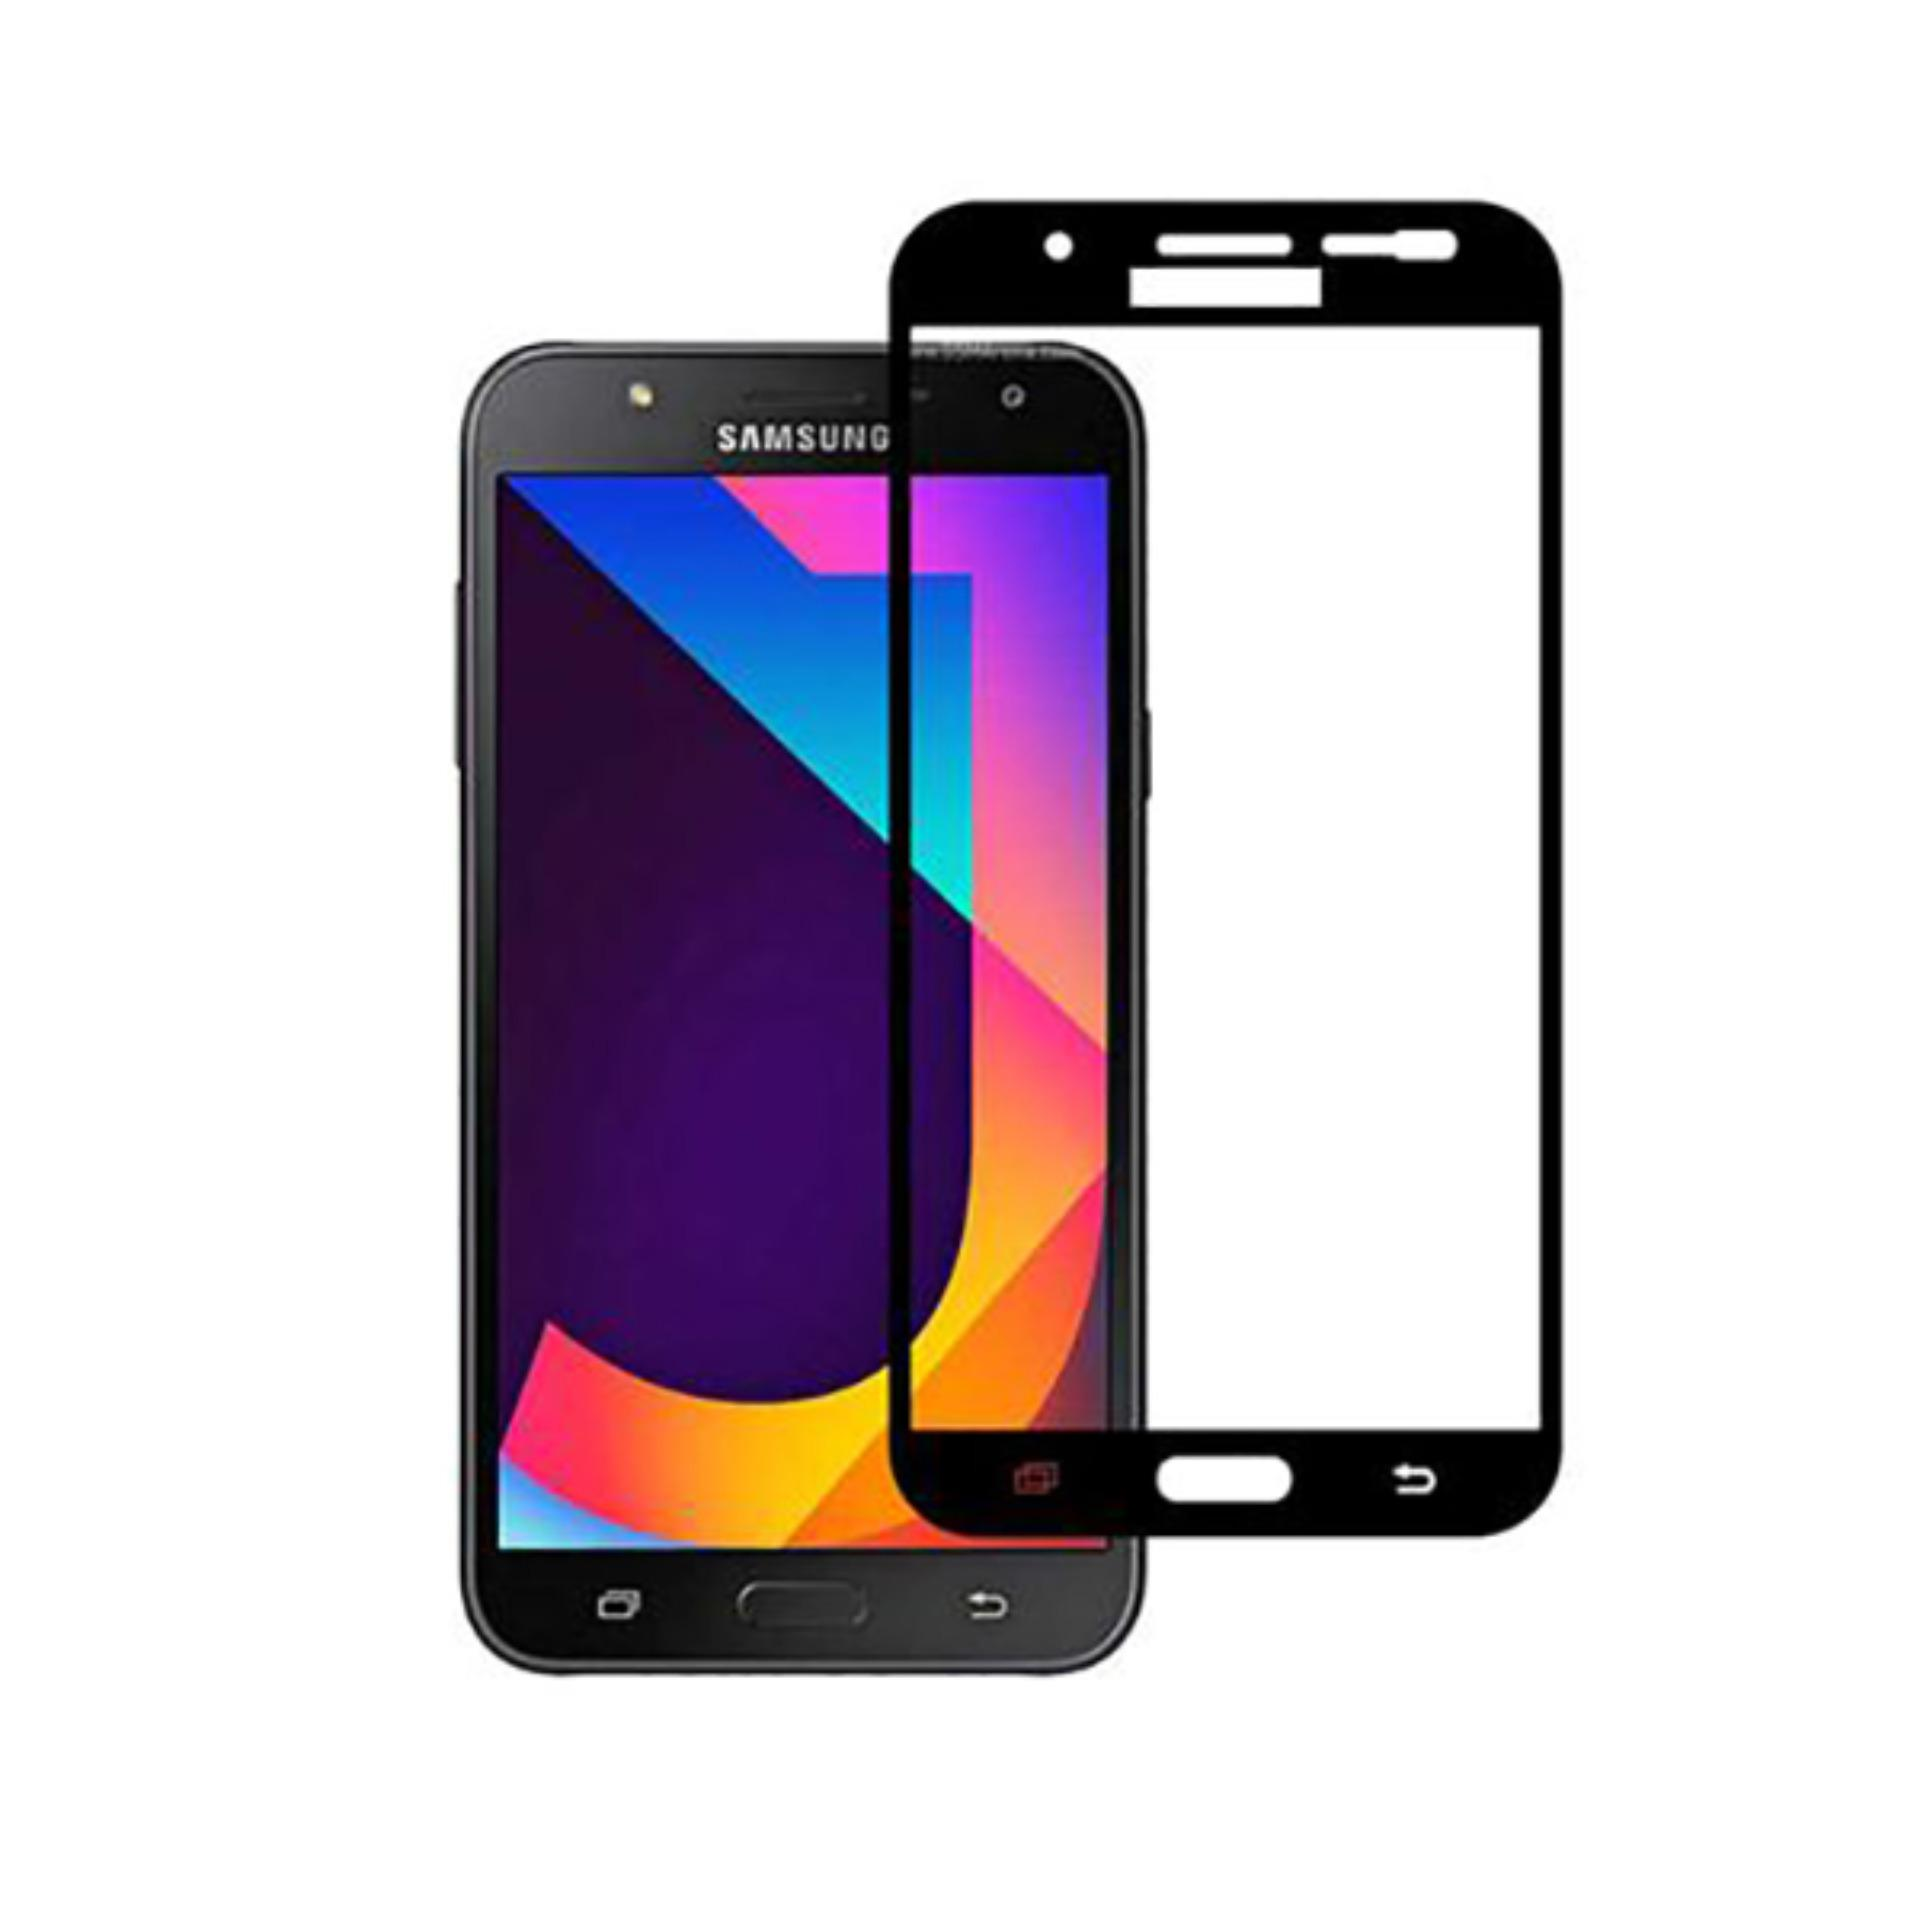 Vn Full Cover Samsung Galaxy J7 Core / J7 (2015) / J700 / 4G LTE / Duos | Premium 9H Tempered Glass 4D Screen Protector Film 0.32mm - Hitam